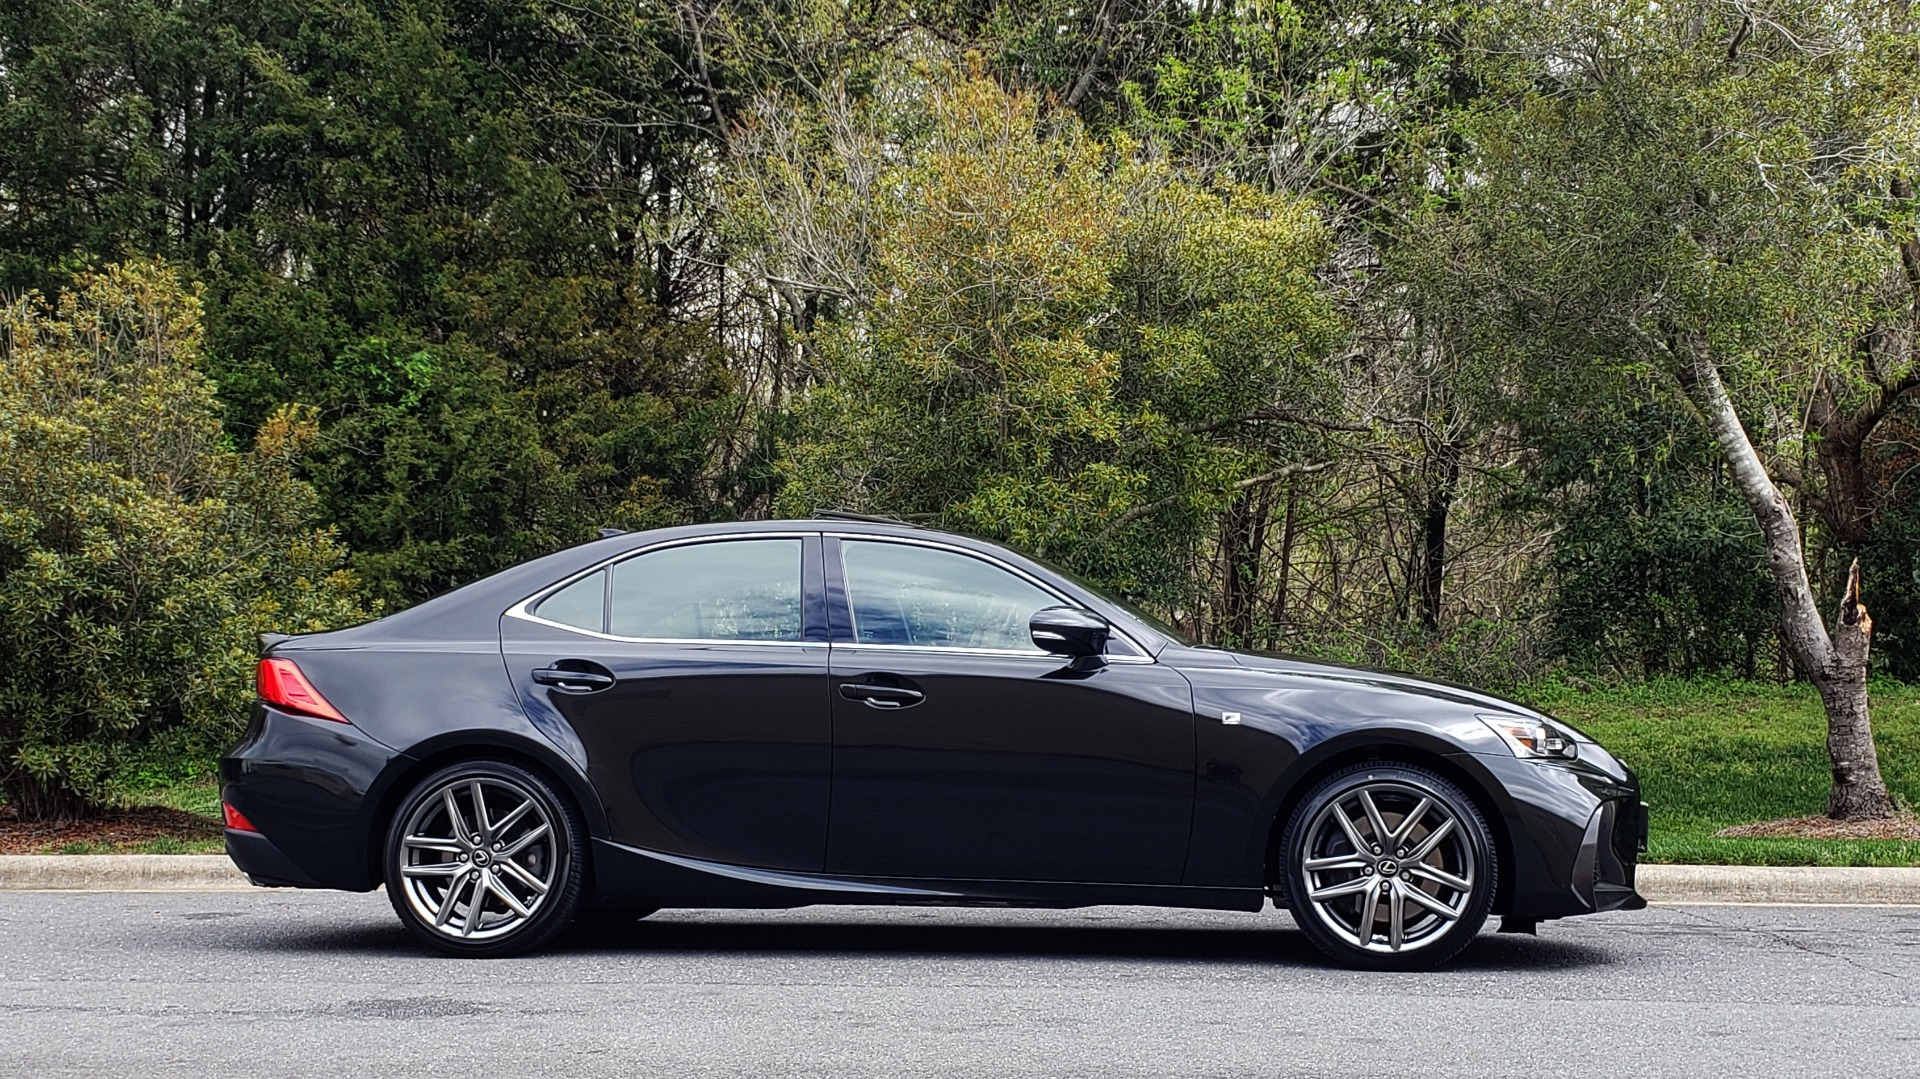 Used 2017 Lexus IS 300 F SPORT AWD / NAV / SUNROOF / REARVIEW / VENT SEATS / BSM for sale Sold at Formula Imports in Charlotte NC 28227 5